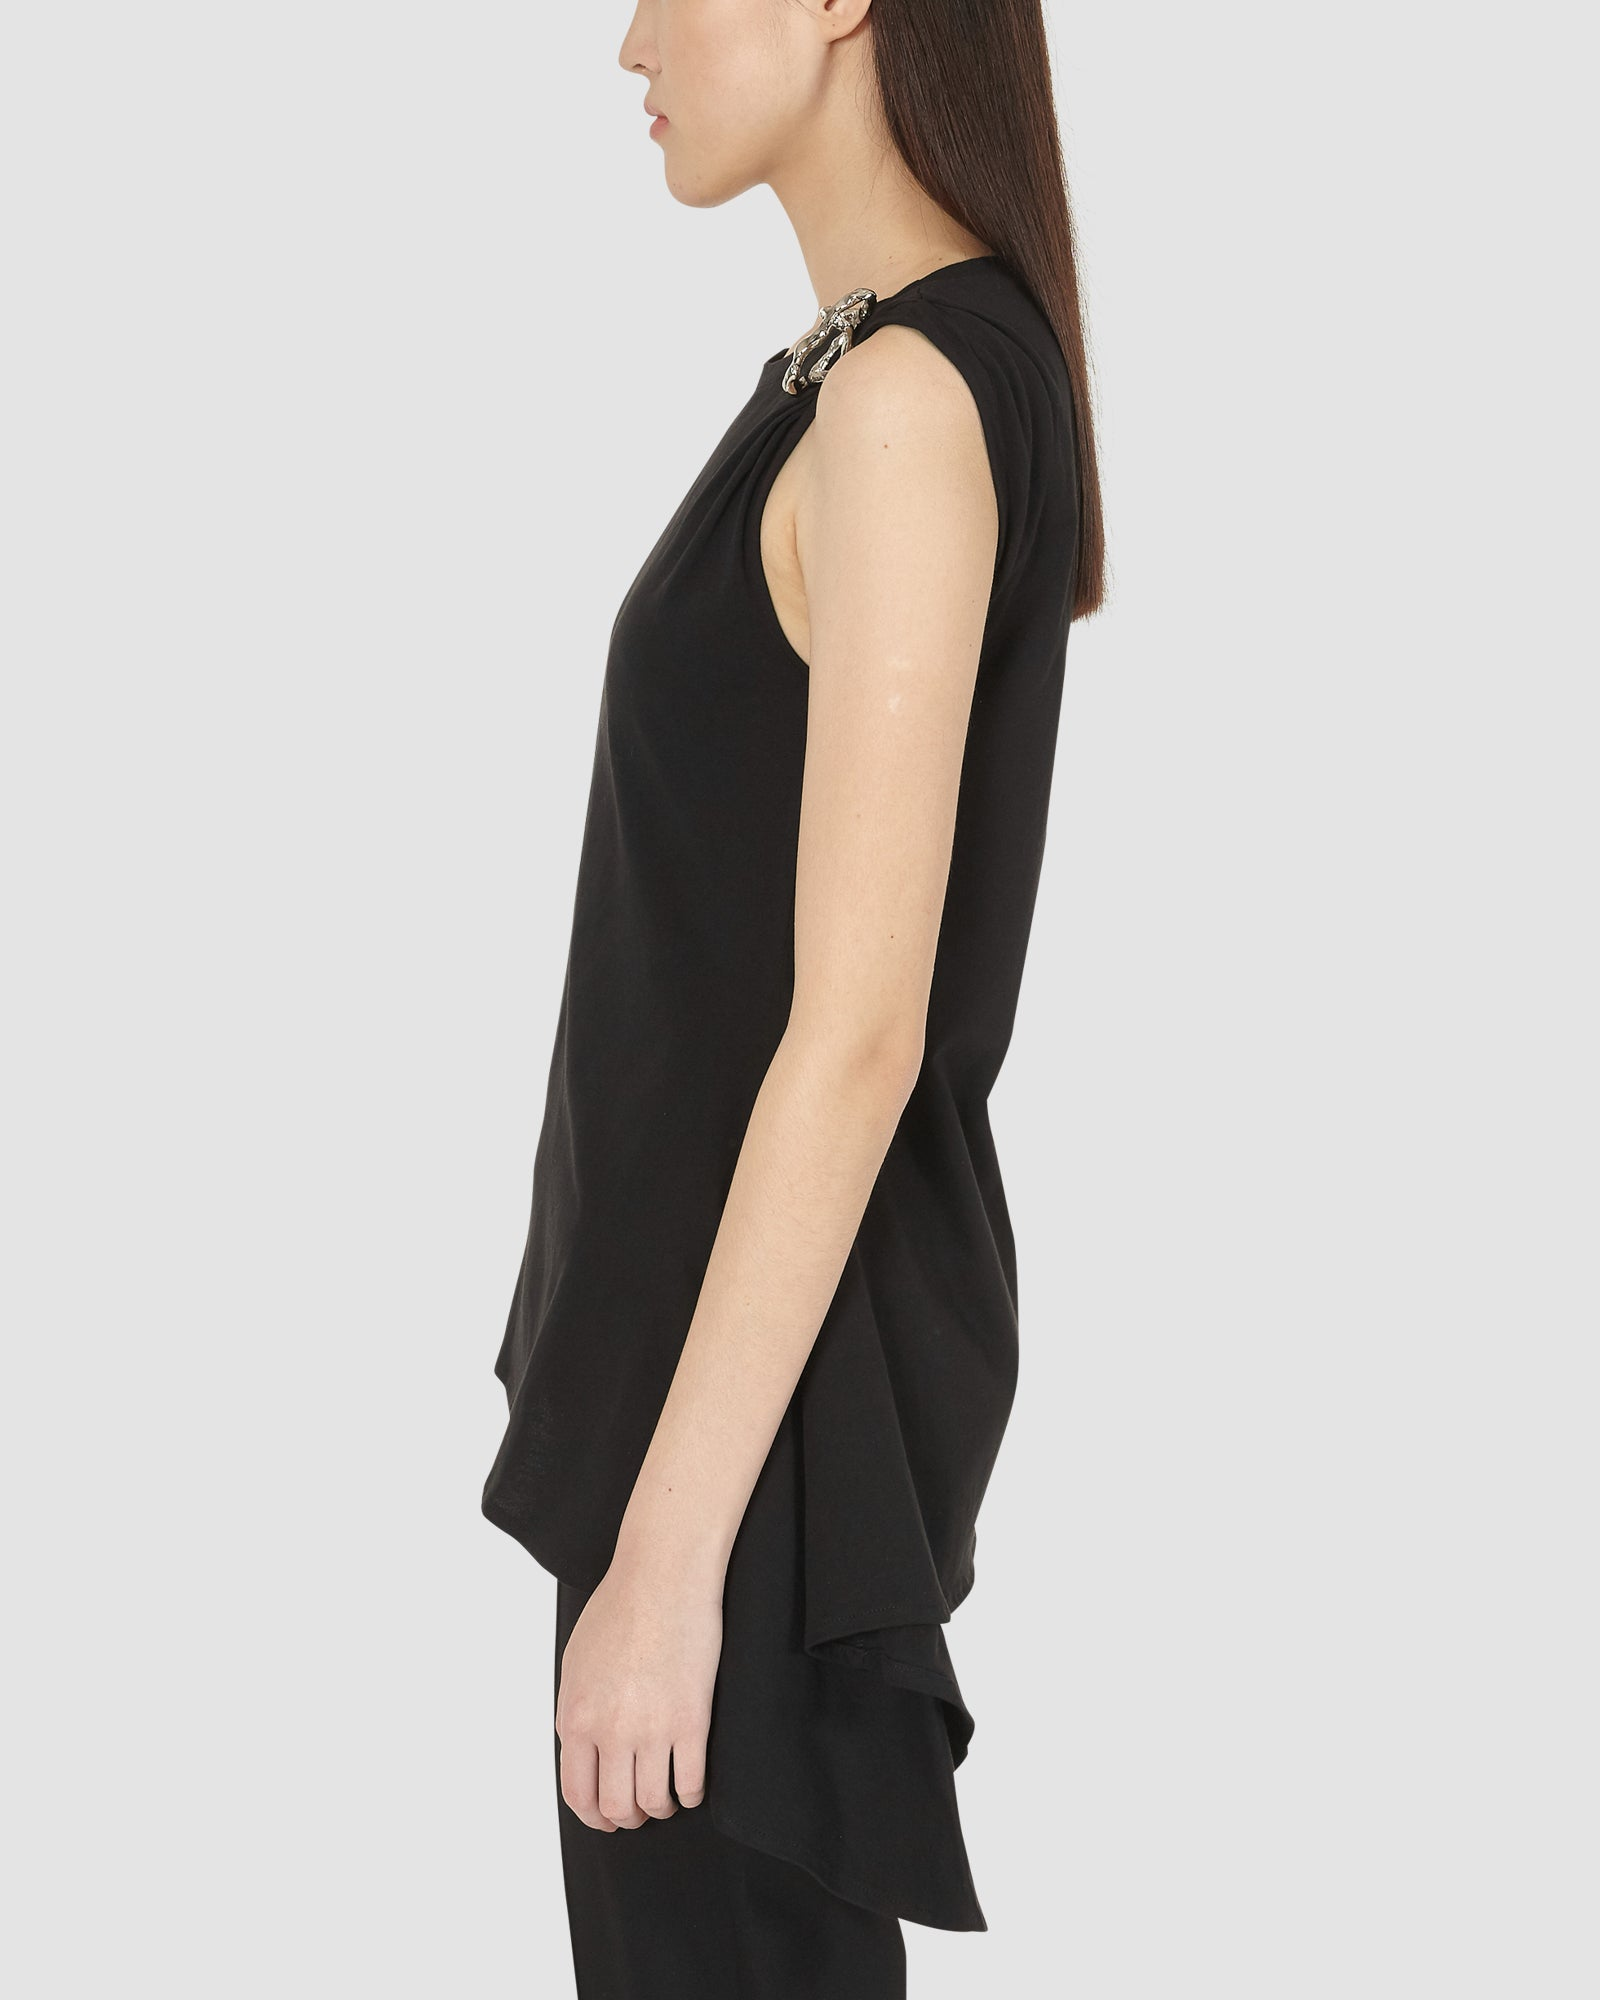 1017 ALYX 9SM | SLEEVELESS SMOCKED TOP | Top | BLACK, Google Shopping, S20, S20EXSH, Top, TOPS & SHIRTS, Woman, WOMEN